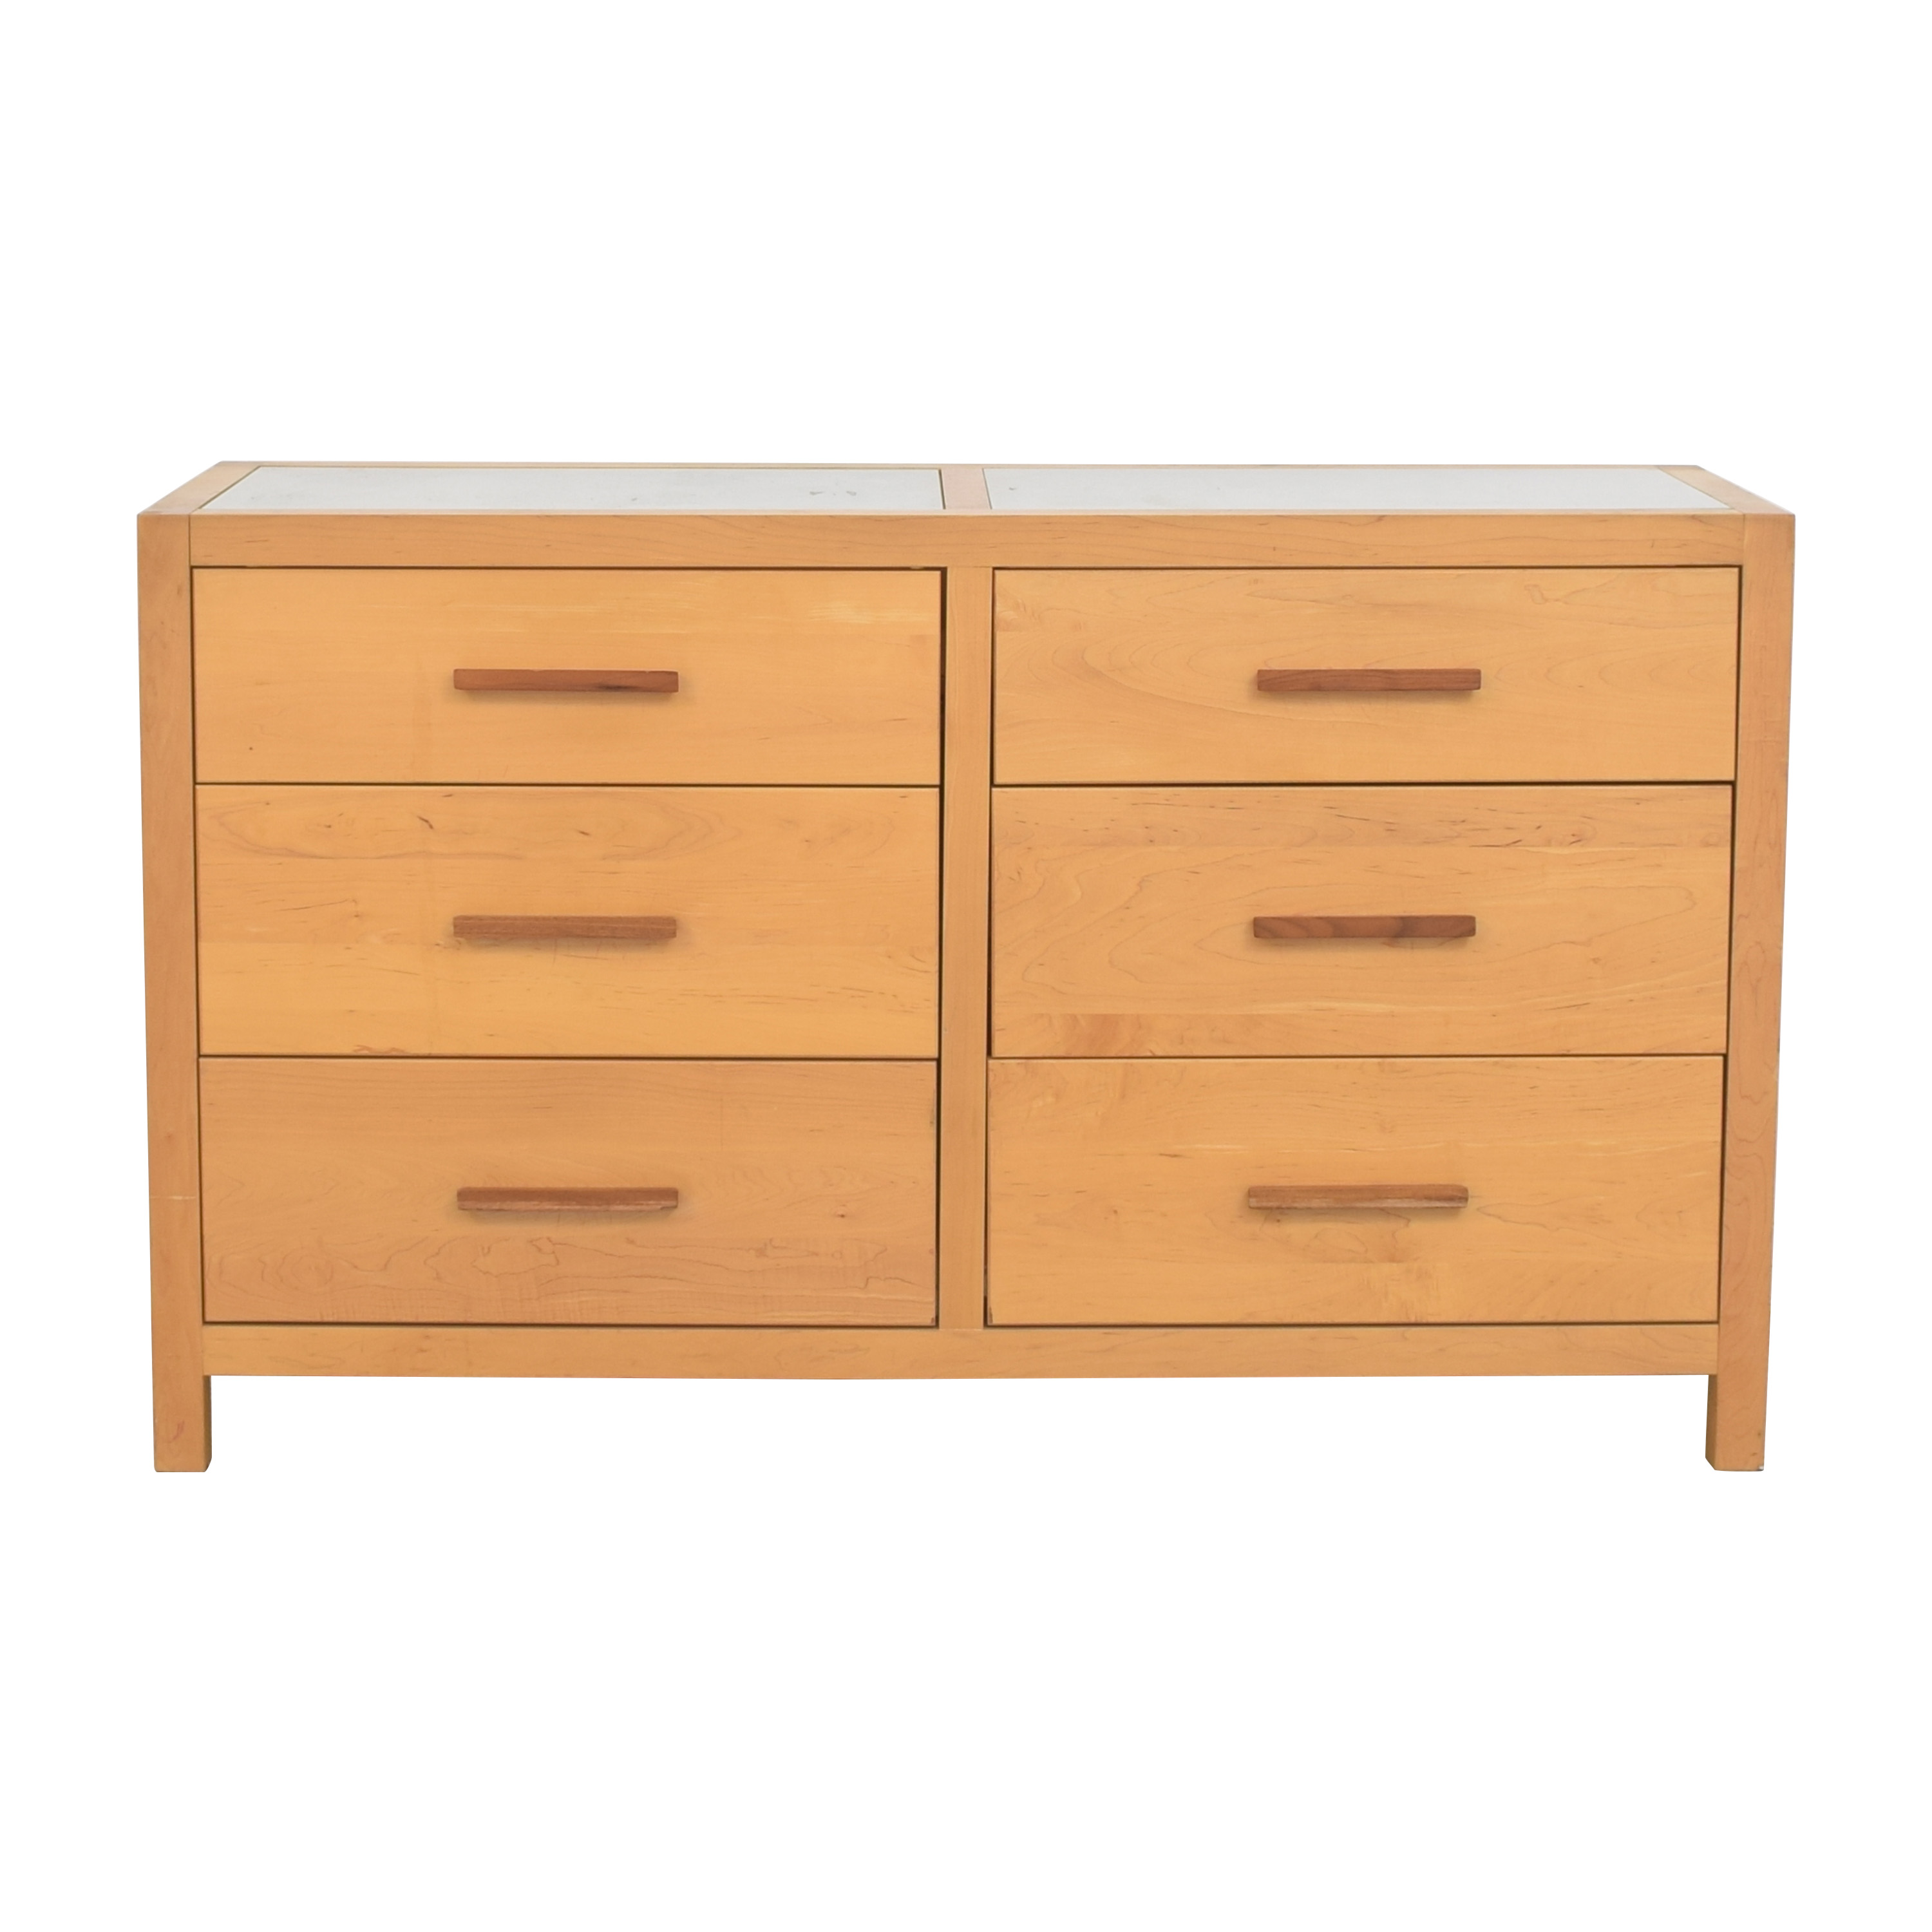 Crate & Barrel Crate & Barrel by Copeland Six Drawer Dresser for sale